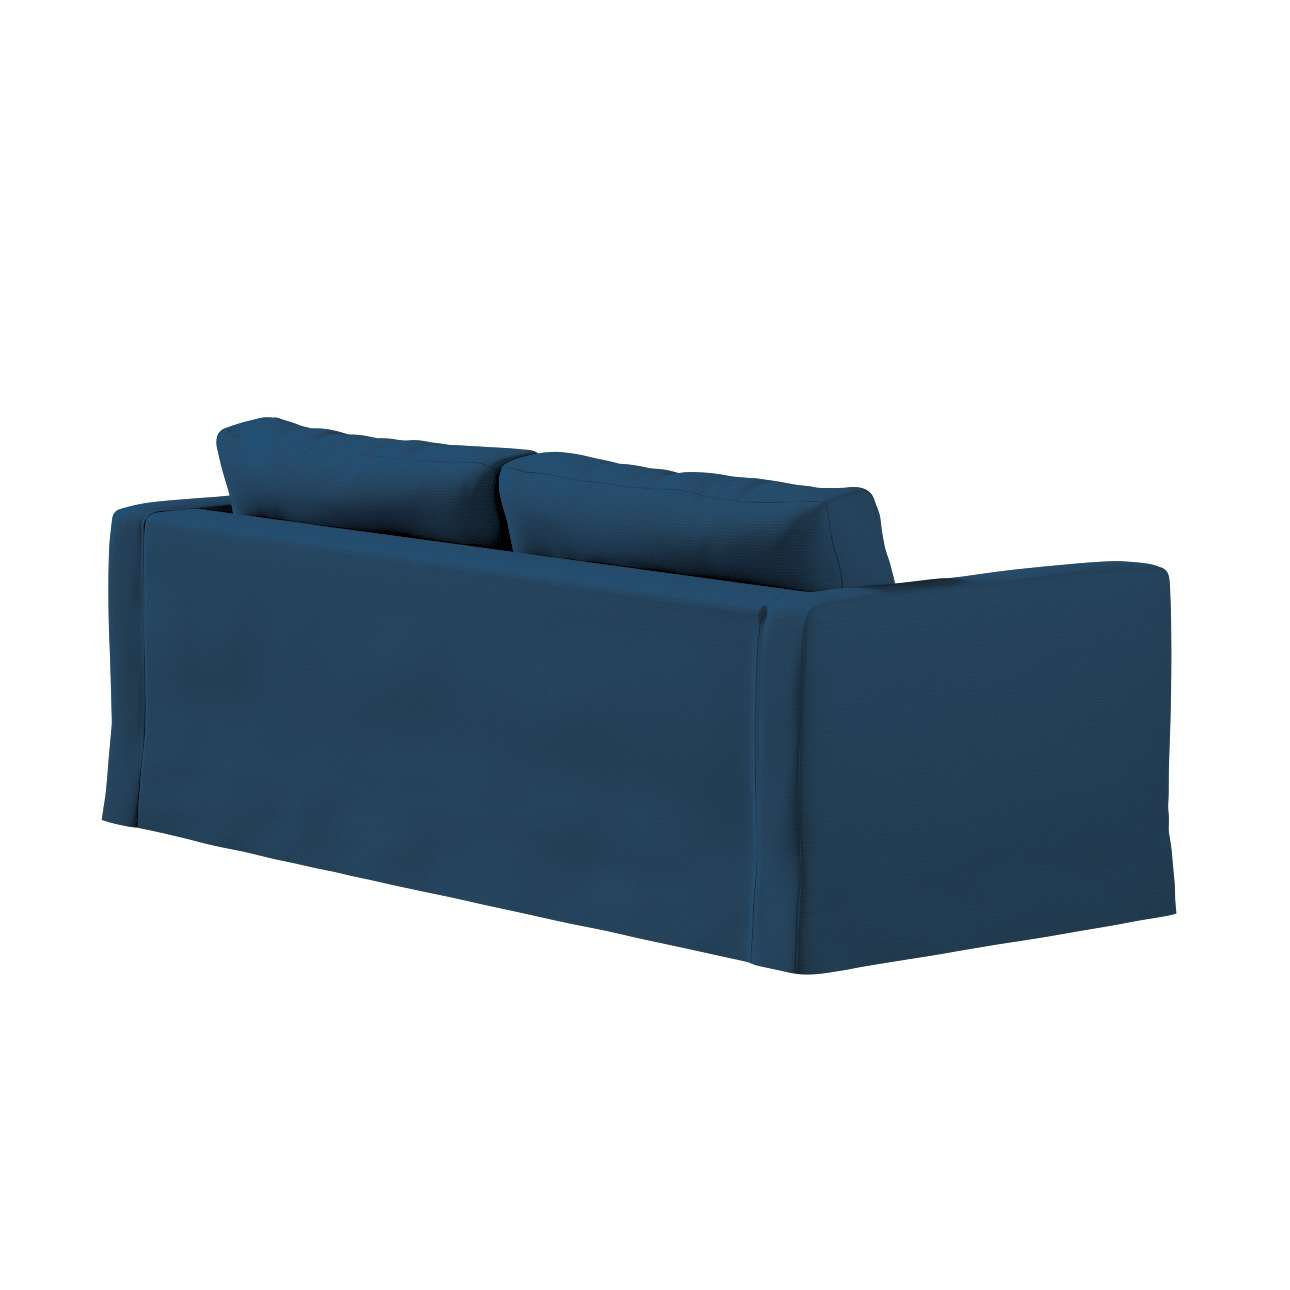 Floor length Karlstad 3-seater sofa cover in collection Panama Cotton, fabric: 702-30